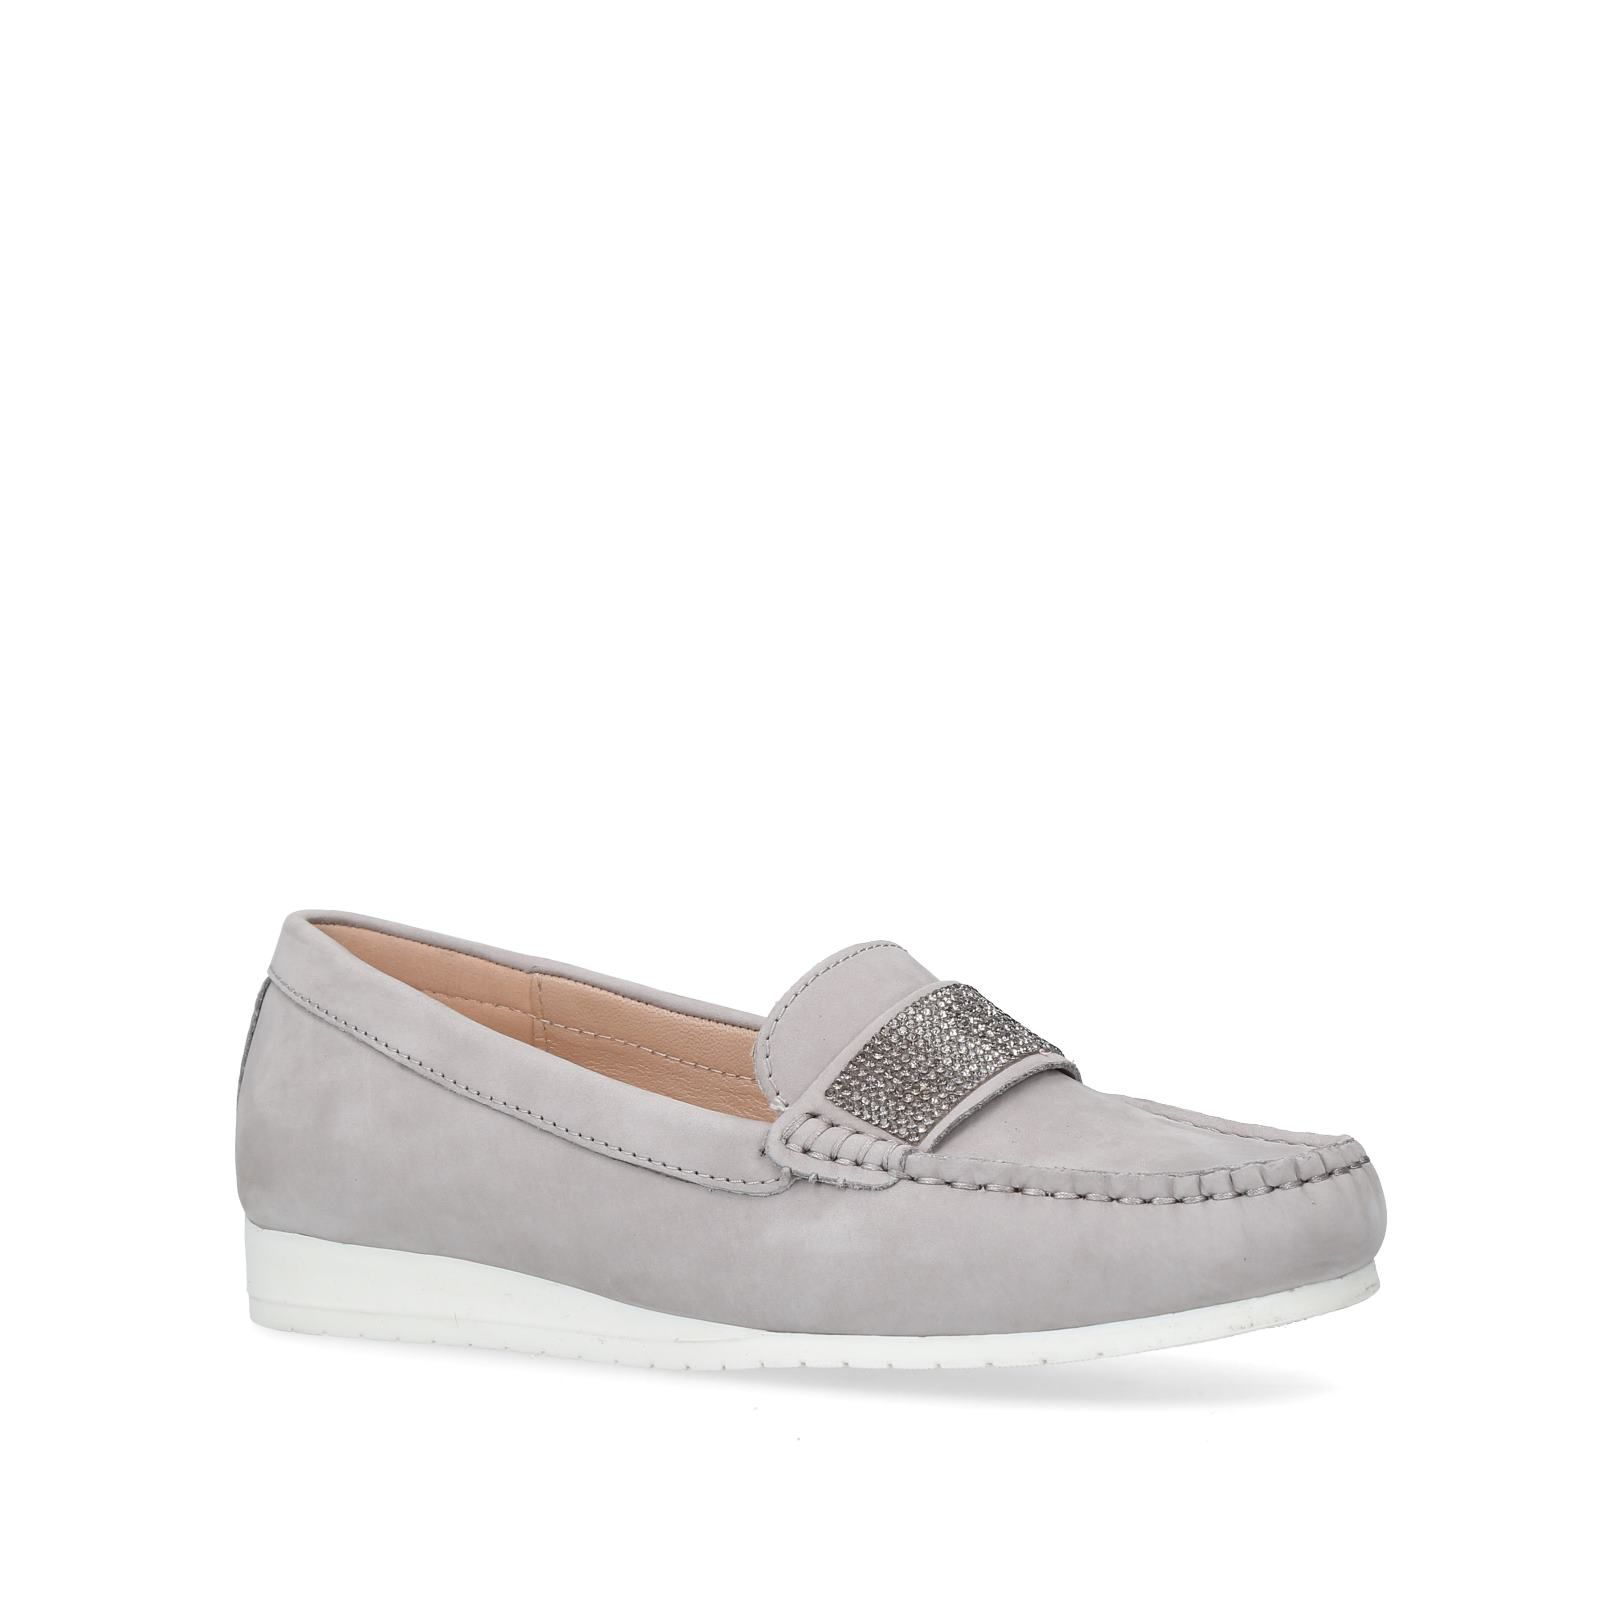 Carvela Comfort Cole Loafers, Grey